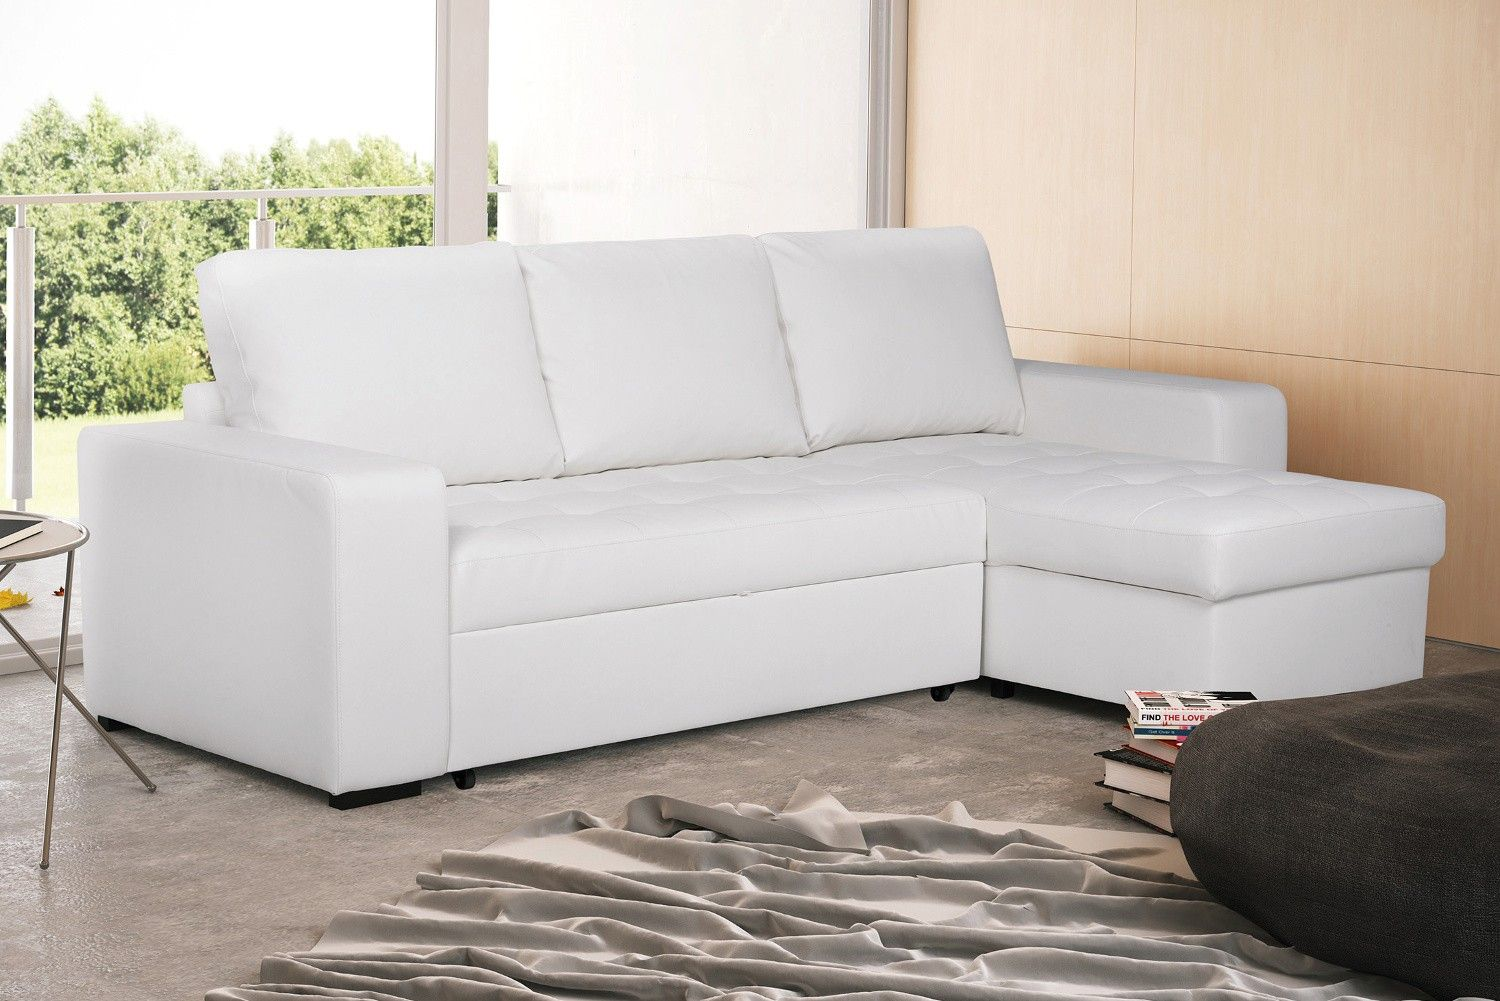 Medidas Sofa Lucia Conforama Chaise Longue Reversible Con Cama Harry Conforama Casa Time